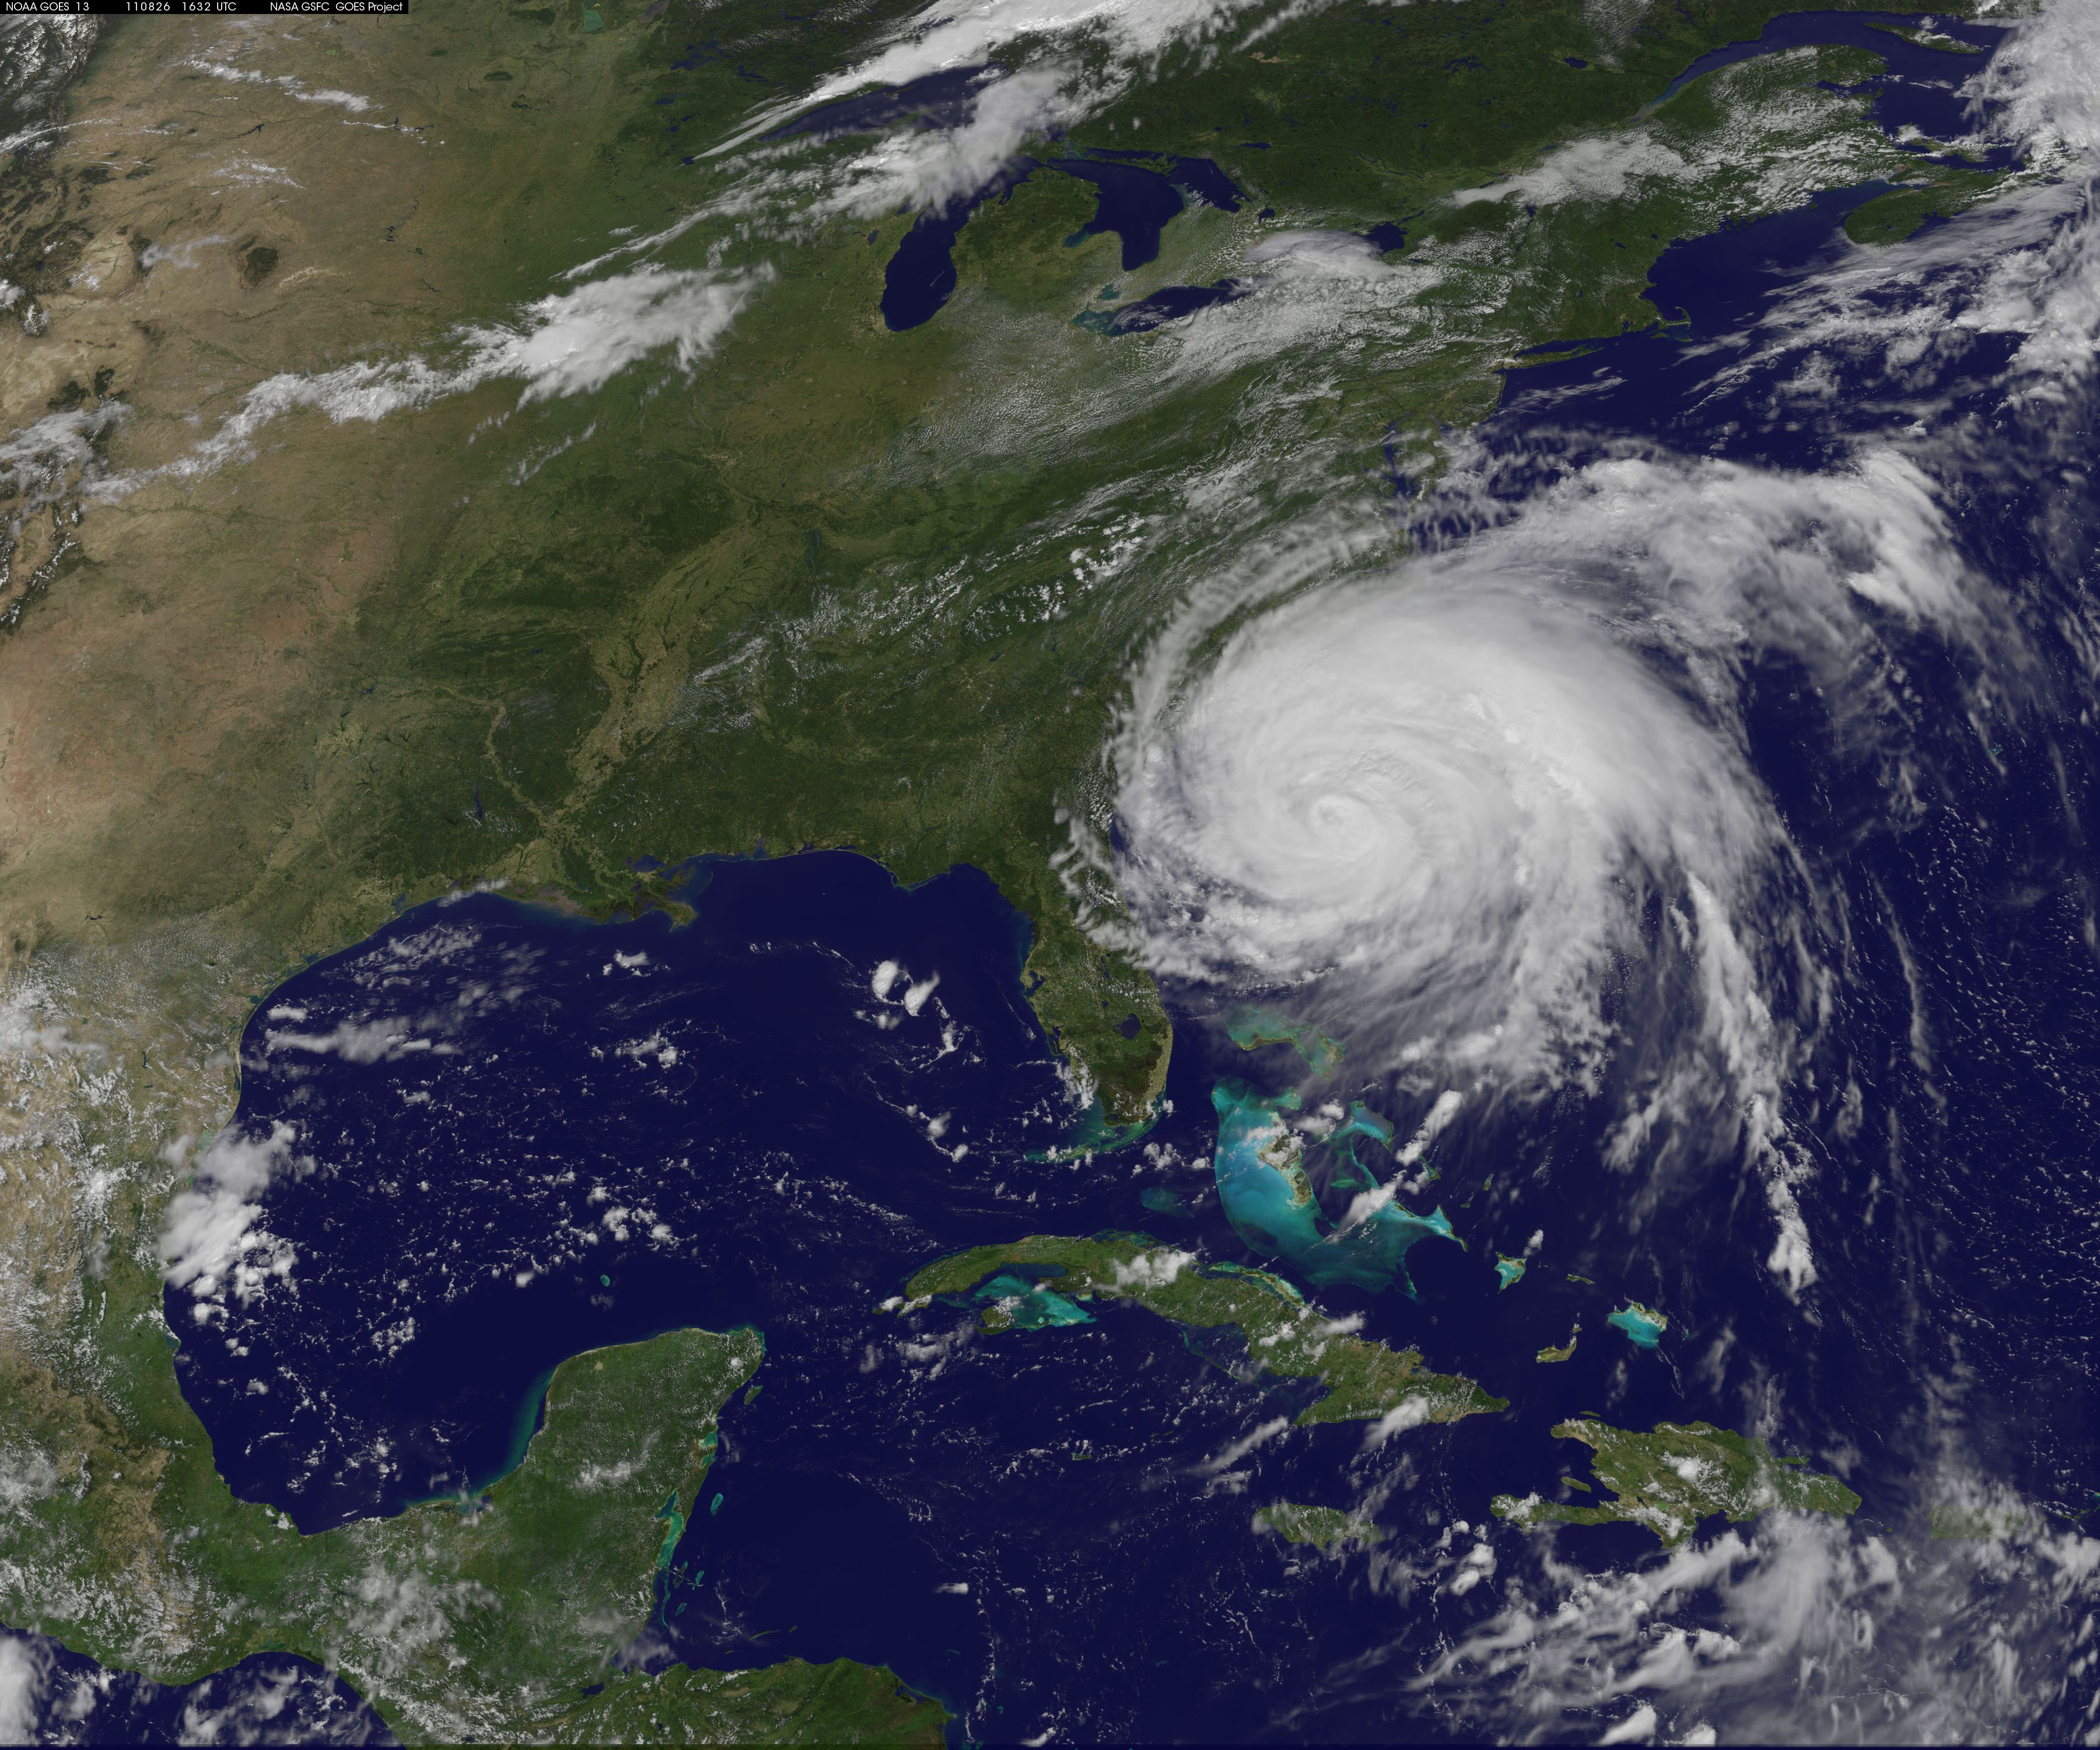 Image of Hurricane Irene from NASA